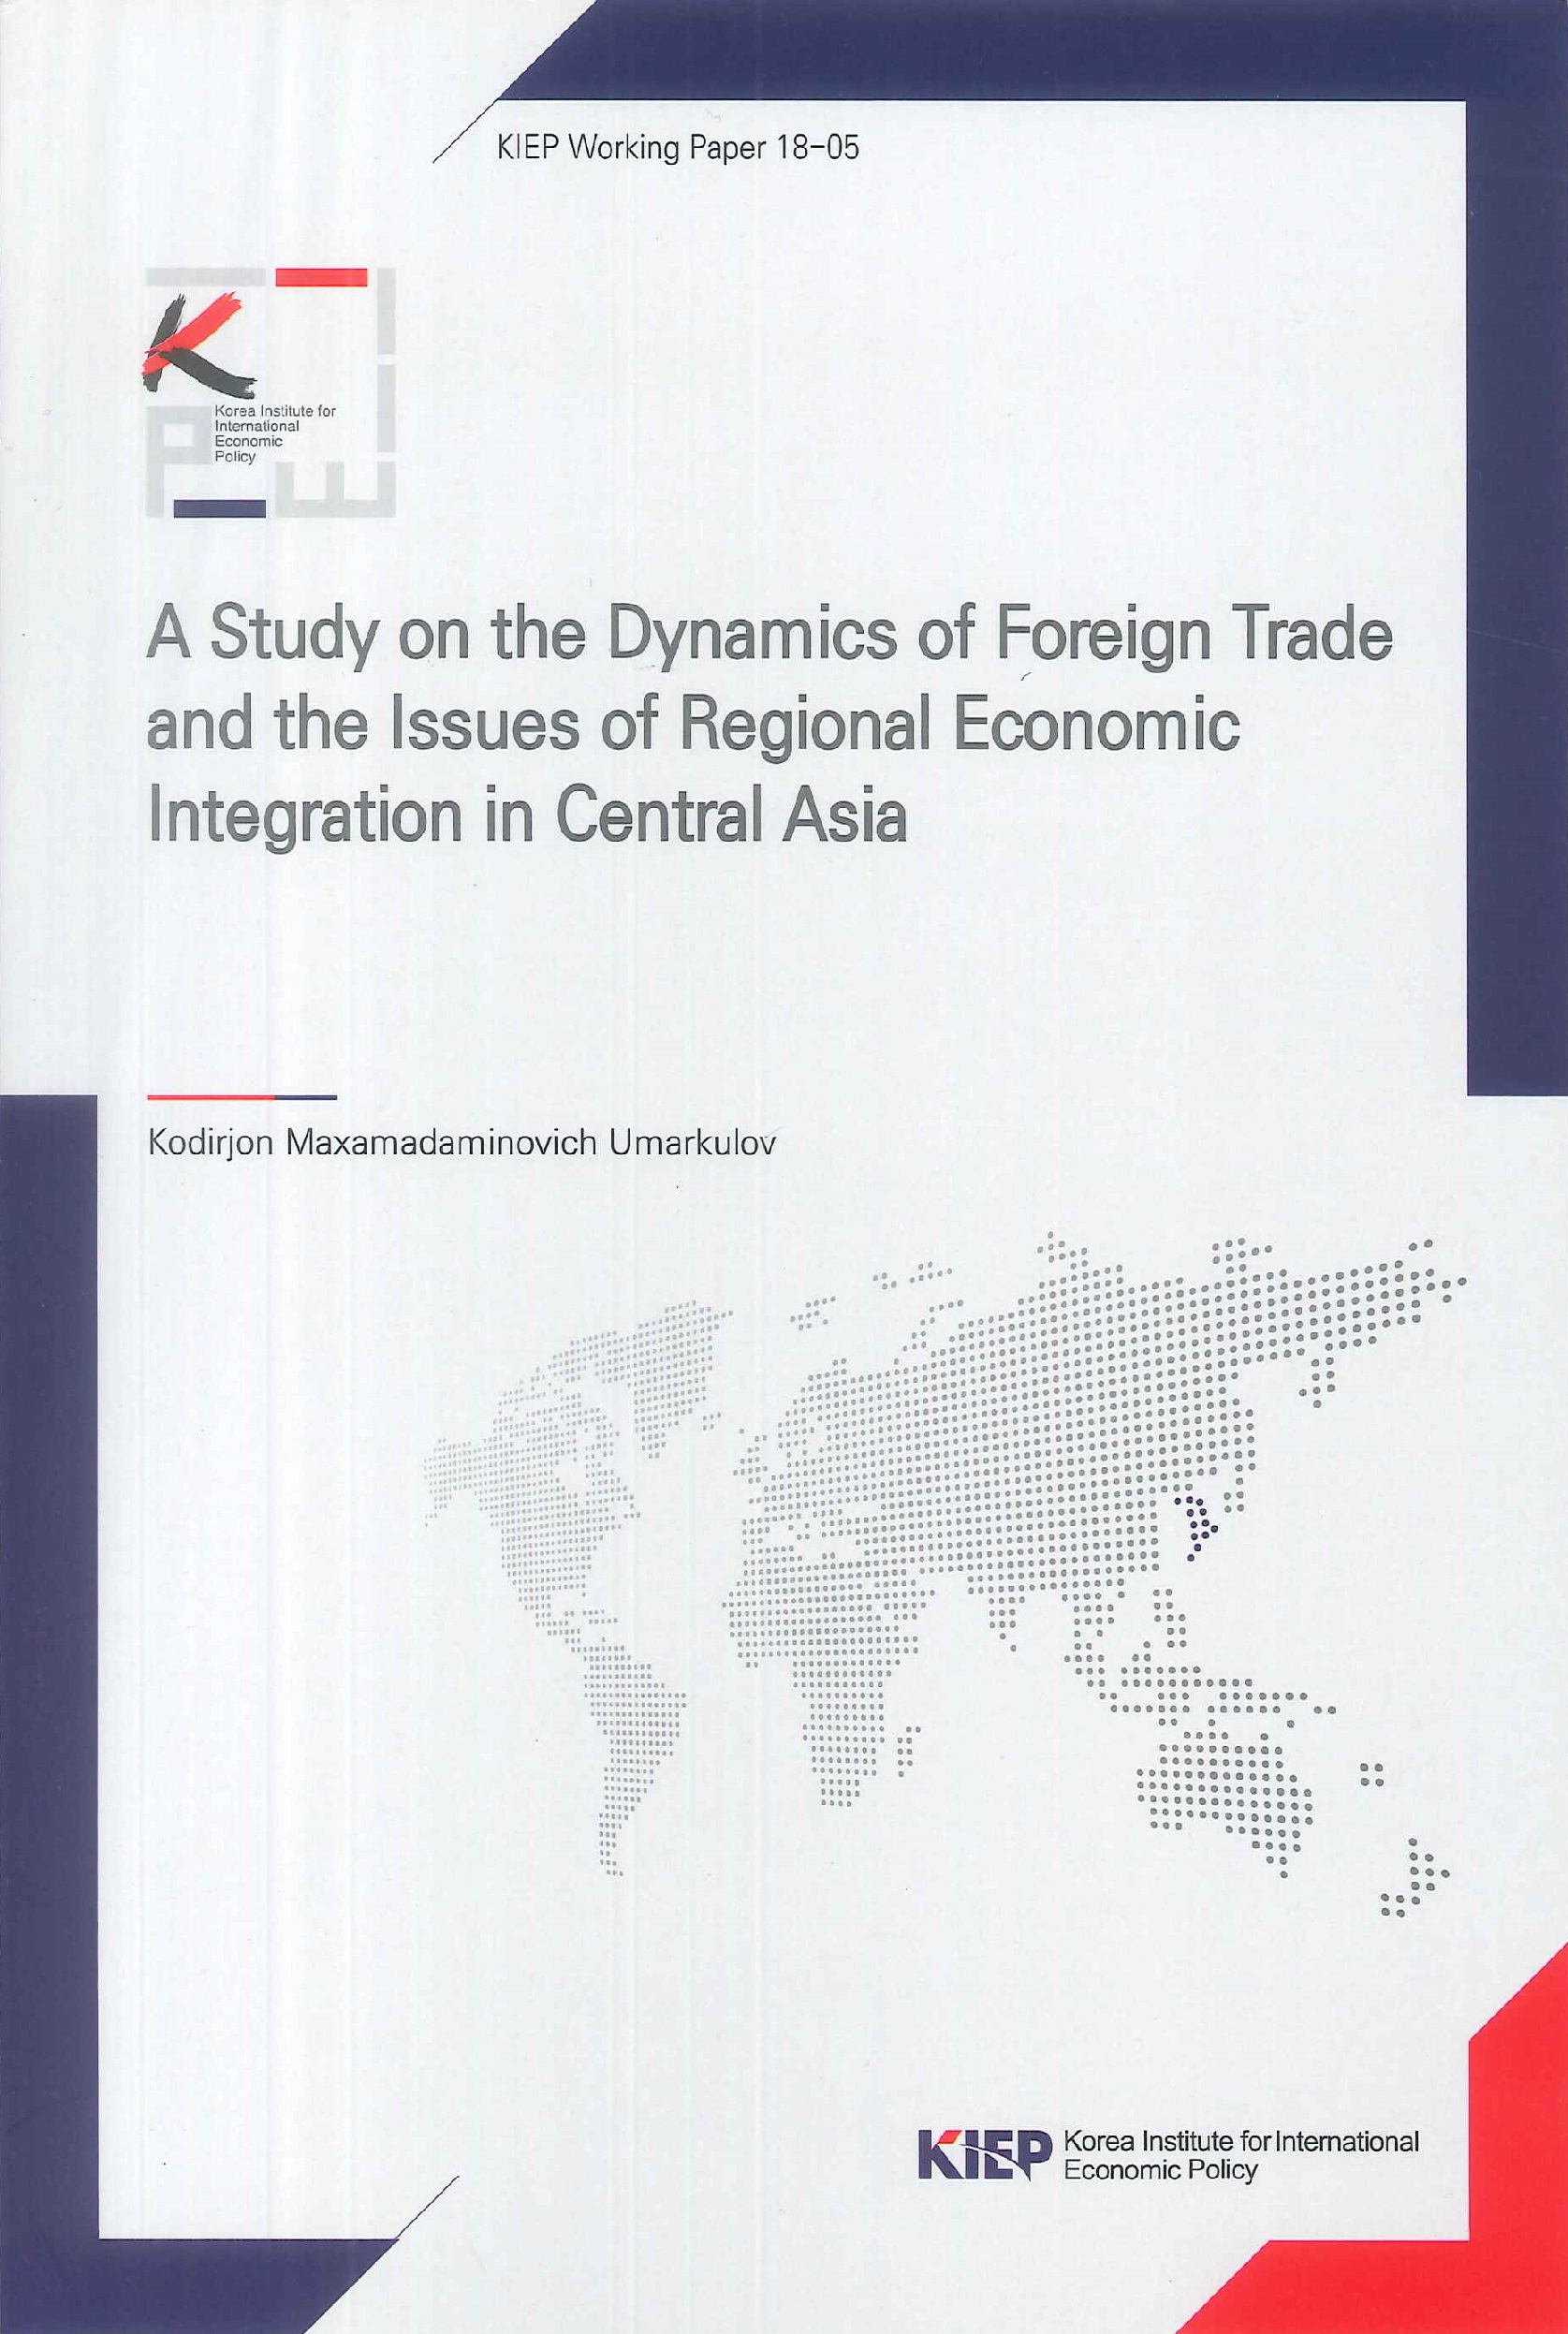 A study on the dynamics of foreign trade and the issues of regional economic integration in Central Asia